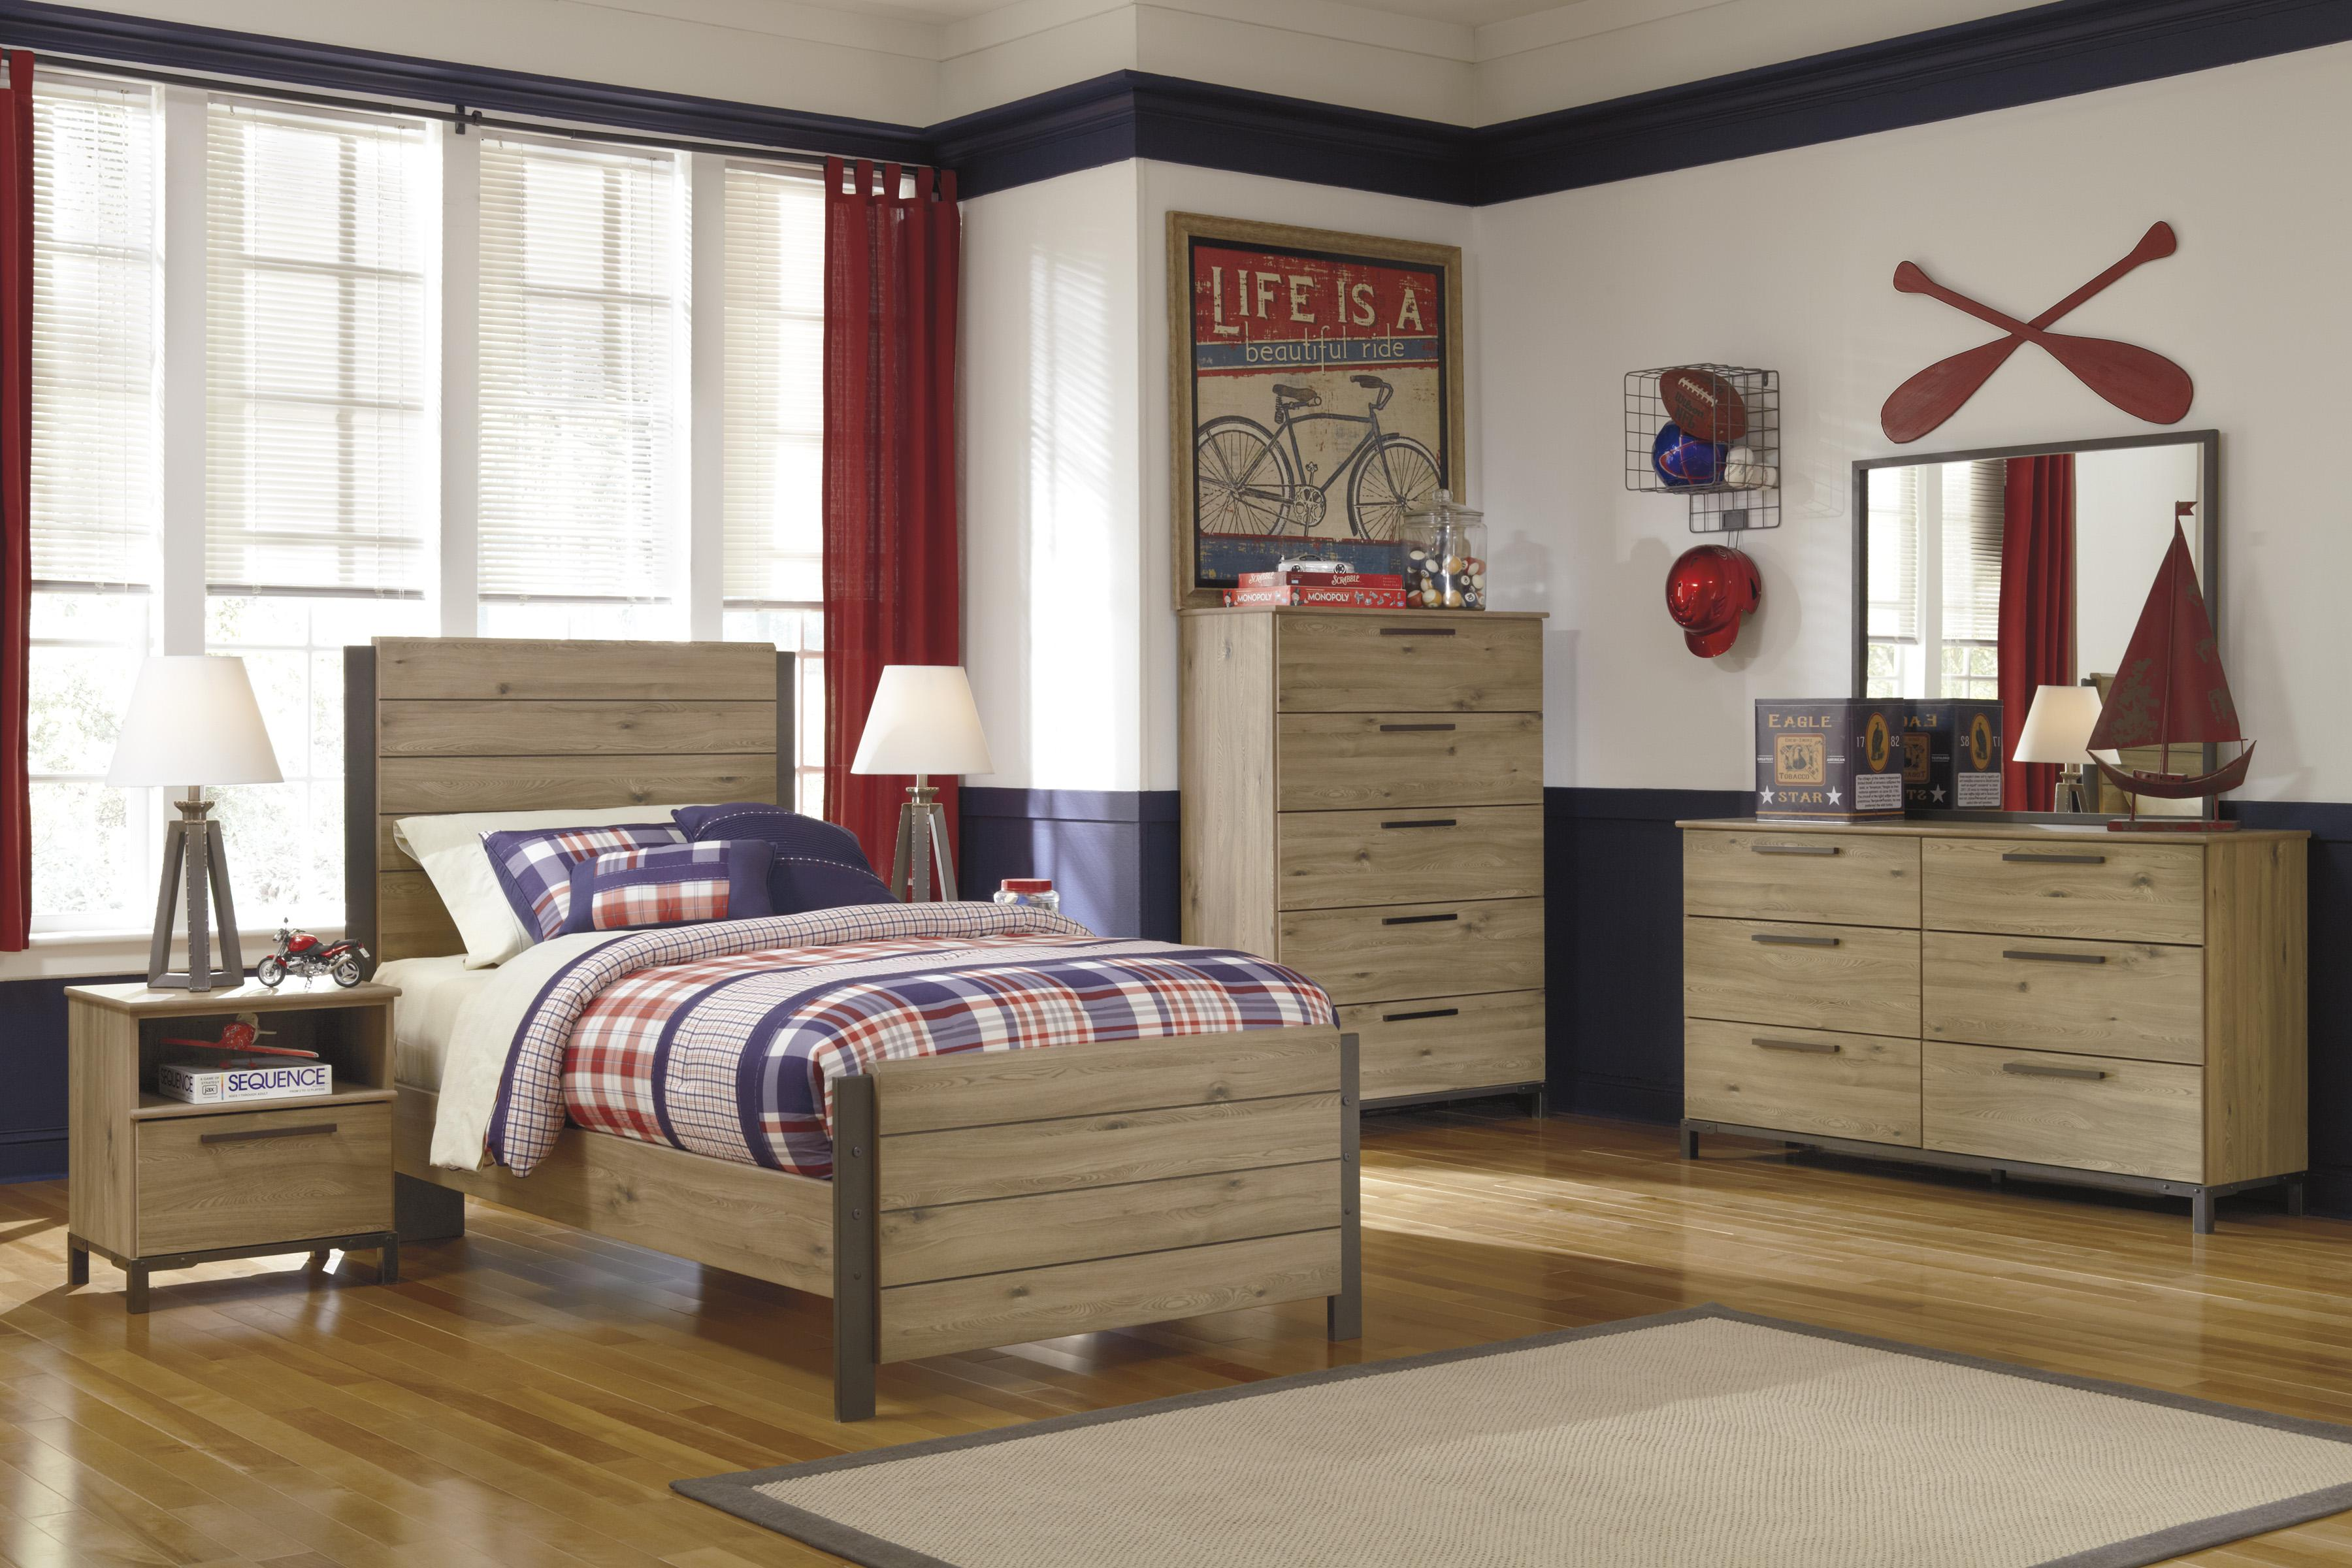 Signature Design by Ashley Dexifield Twin Bedroom Group - Item Number: B298 T Bedroom Group 1